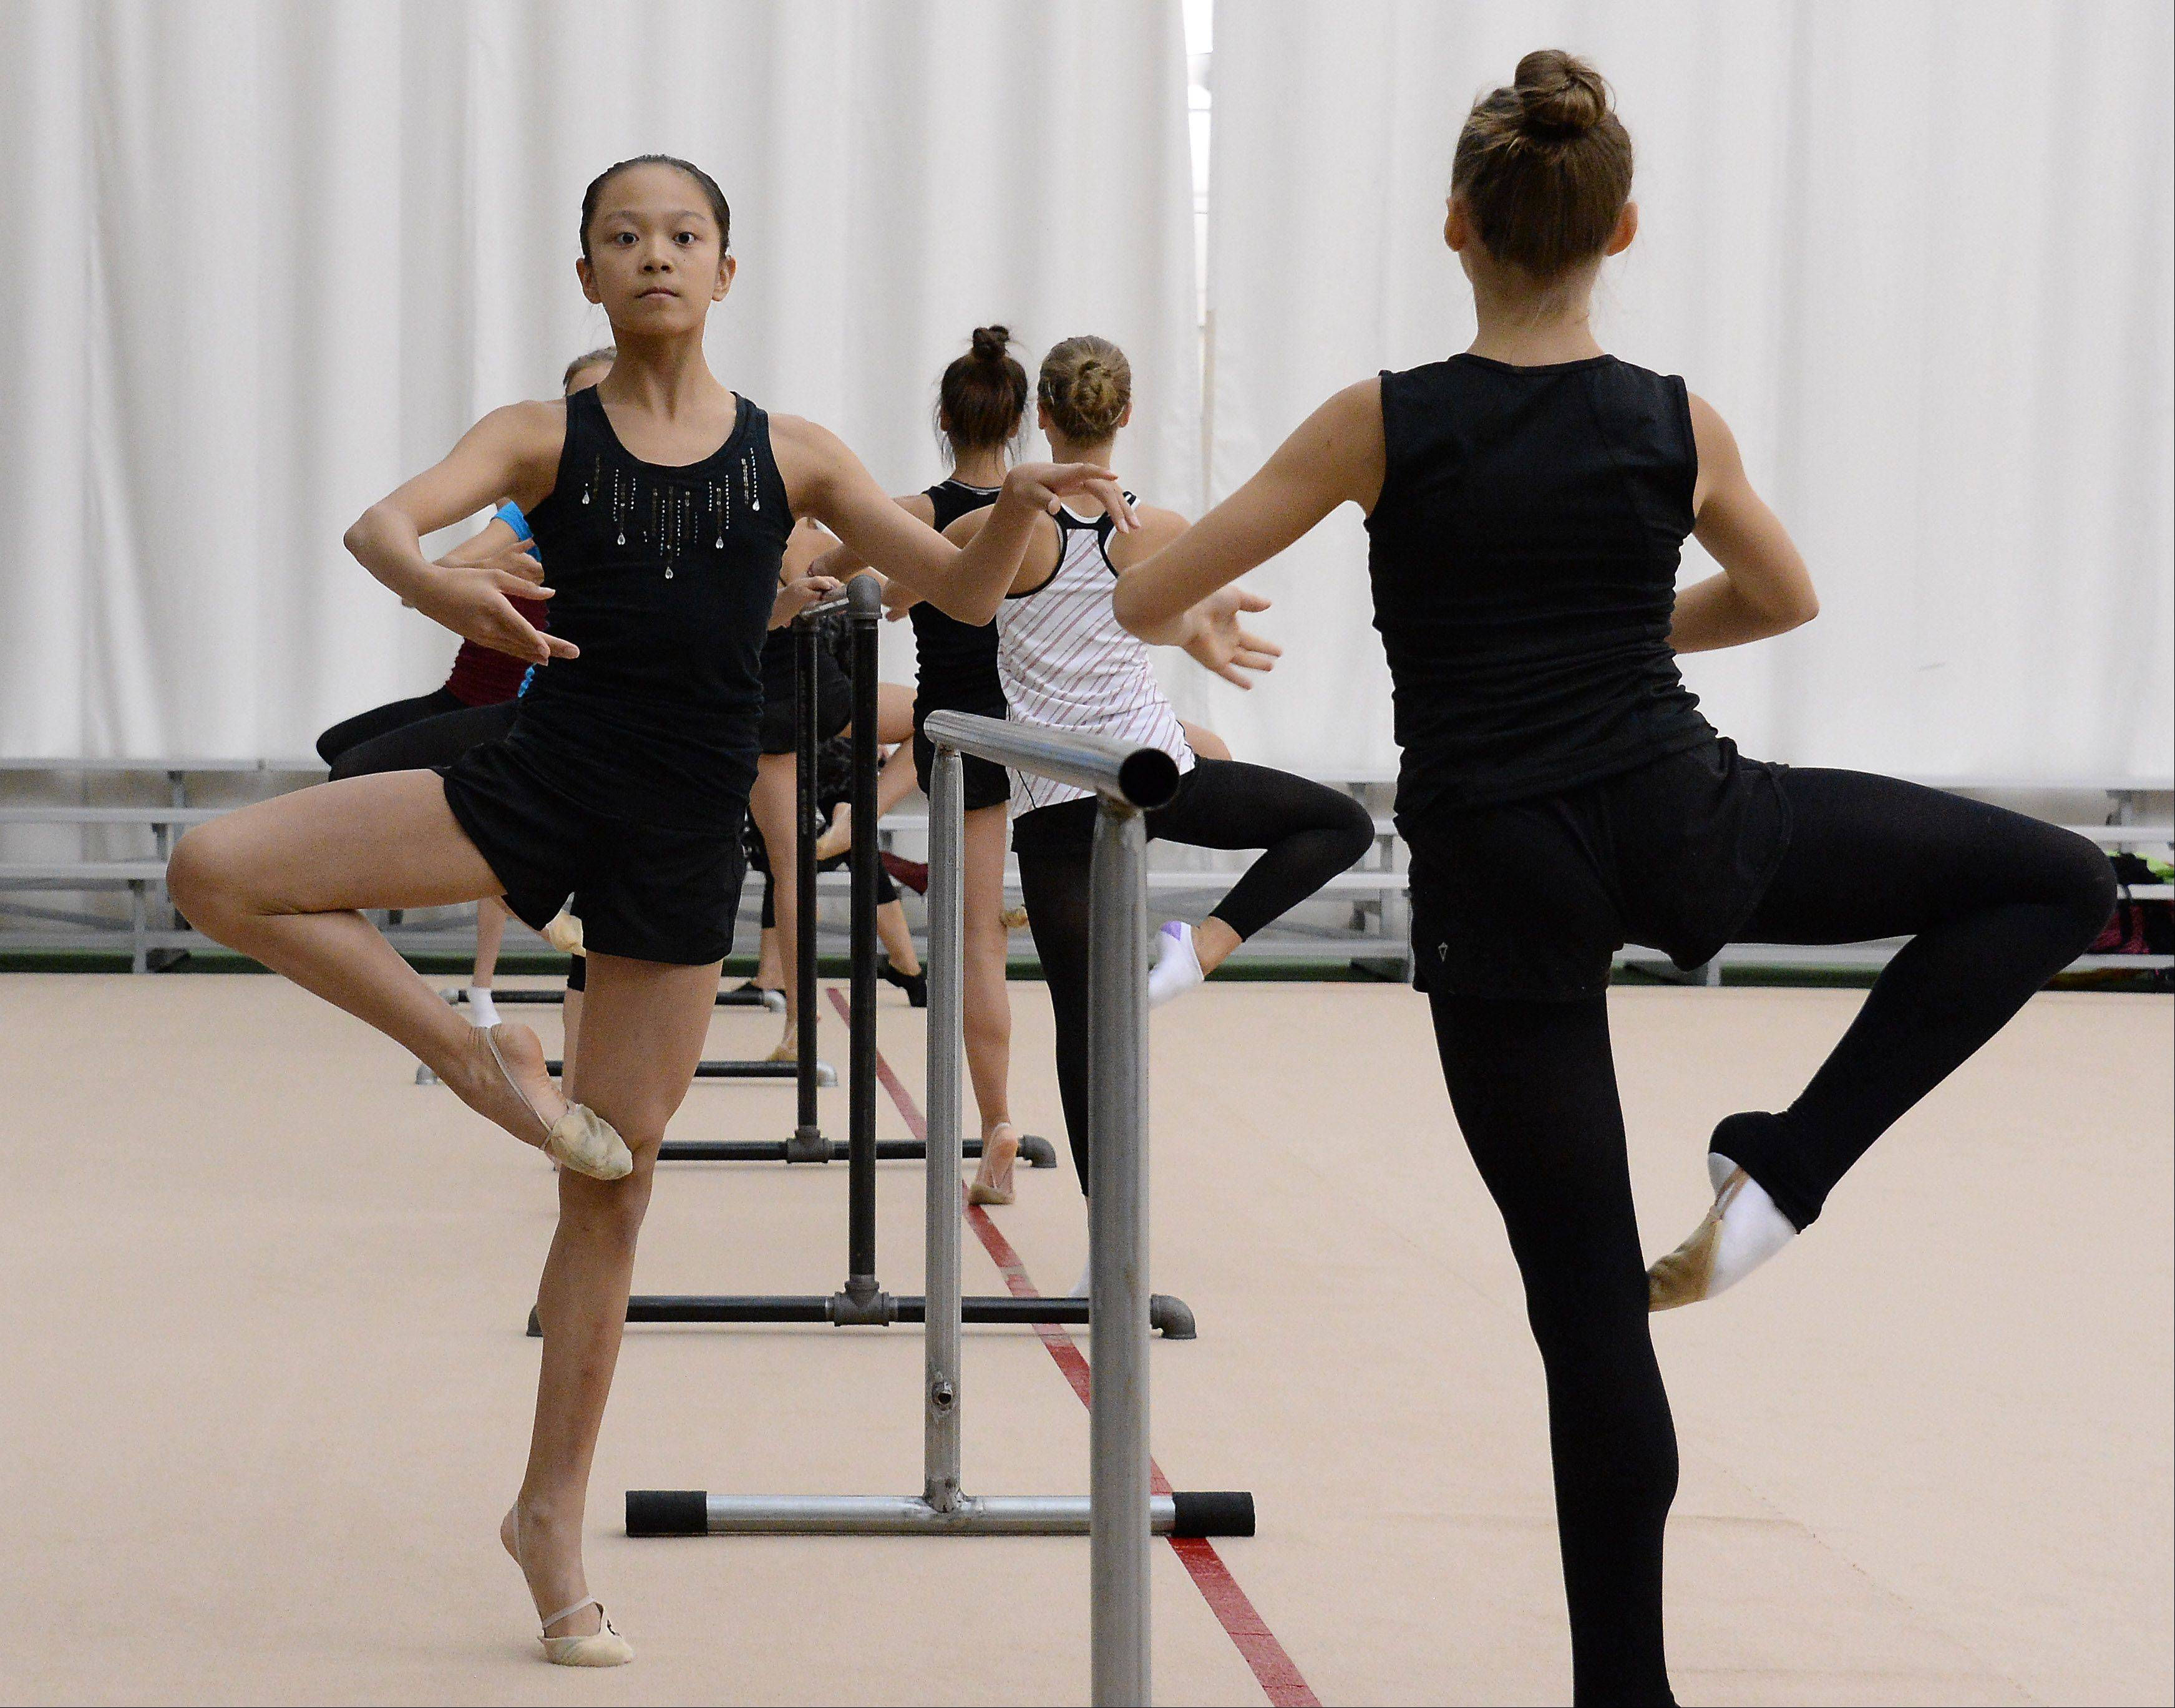 Laura Zeng, 13, left, of Libertyville and Camilla Feeley, 13, of Lincolnshire take a ballet lesson during a recent training session at the North Shore Rhythmic Gymnastic Center in Deerfield. Both are members of the junior national team and Laura is the reigning national champion.